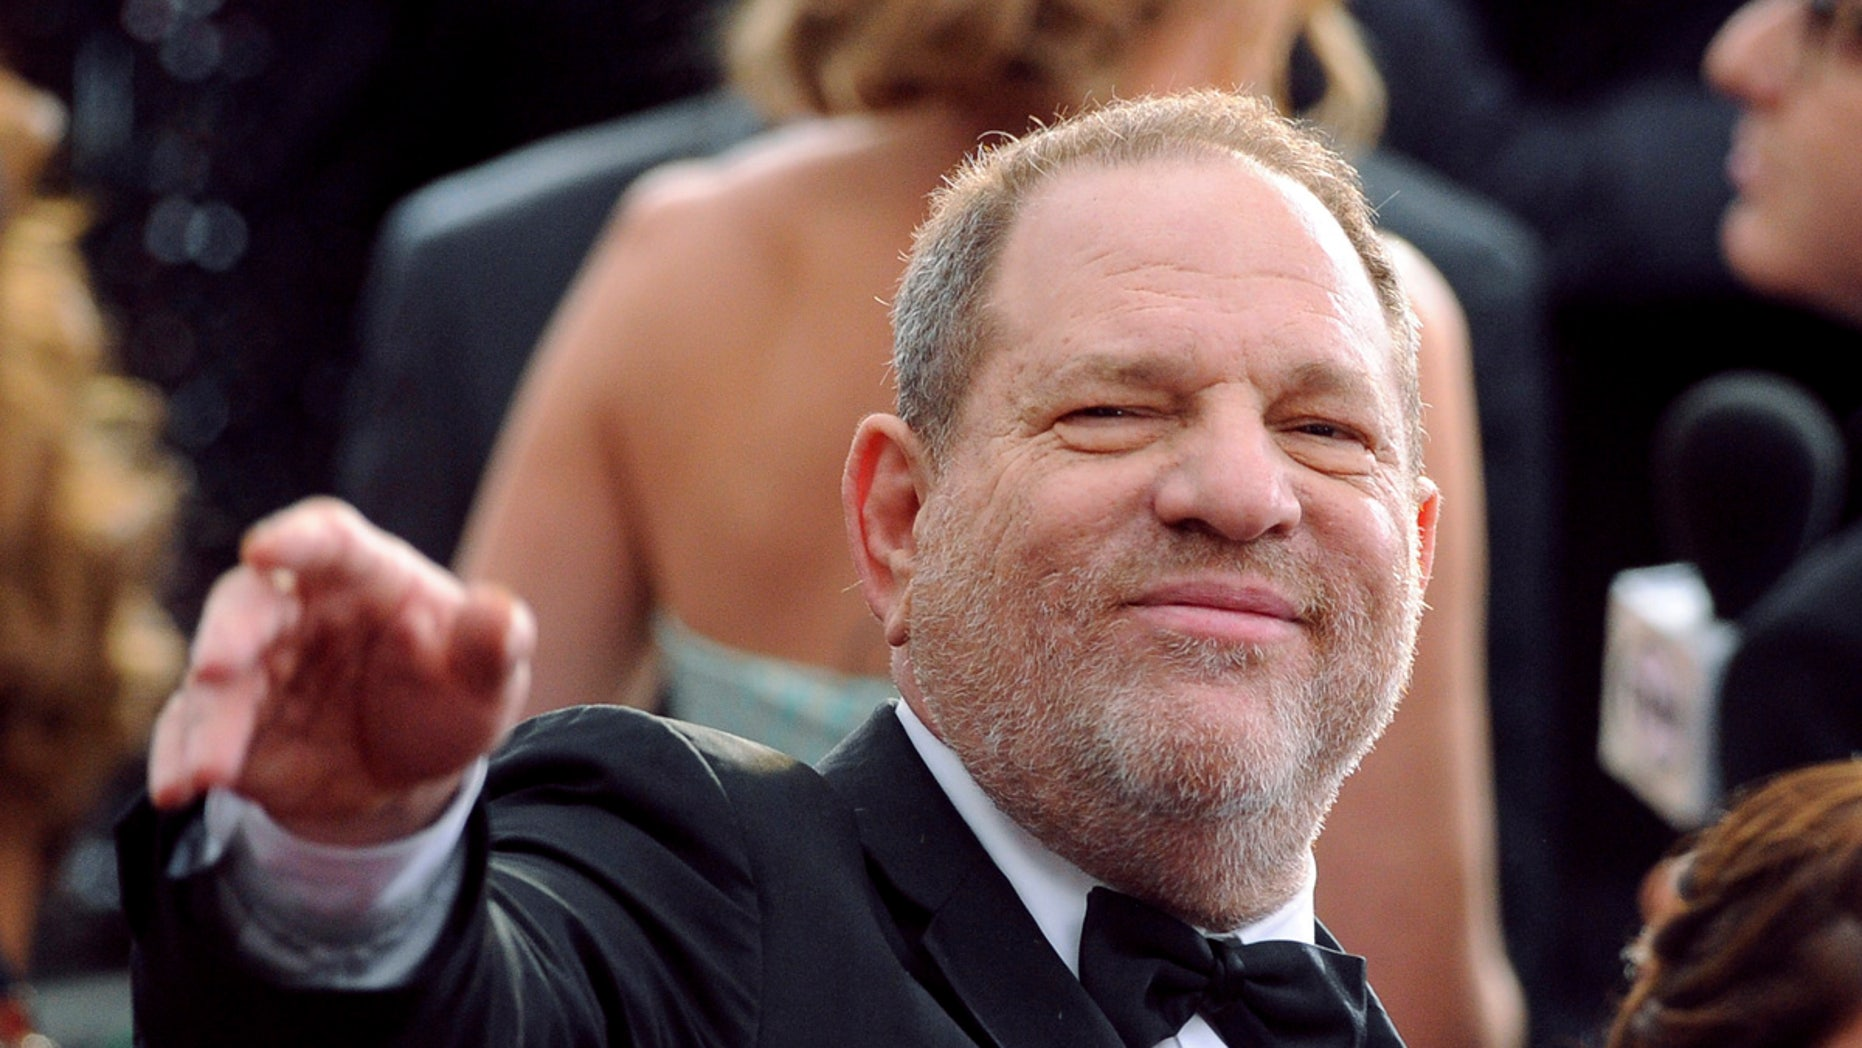 Investigators in two major cities are looking into sexual assault claims made against Harvey Weinstein.